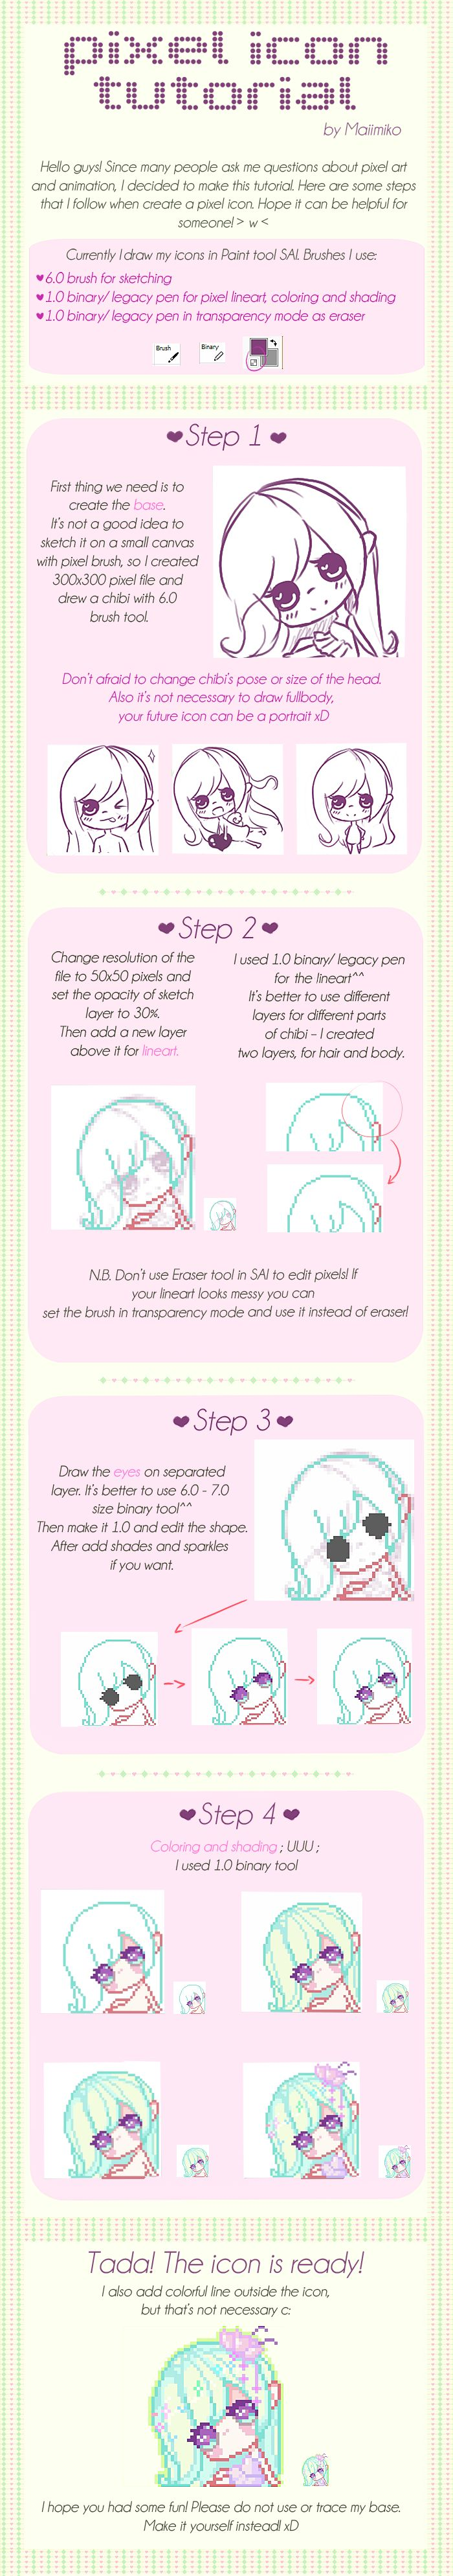 Pixel Icon Tutorial By Maiimikoiantart On @deviantart